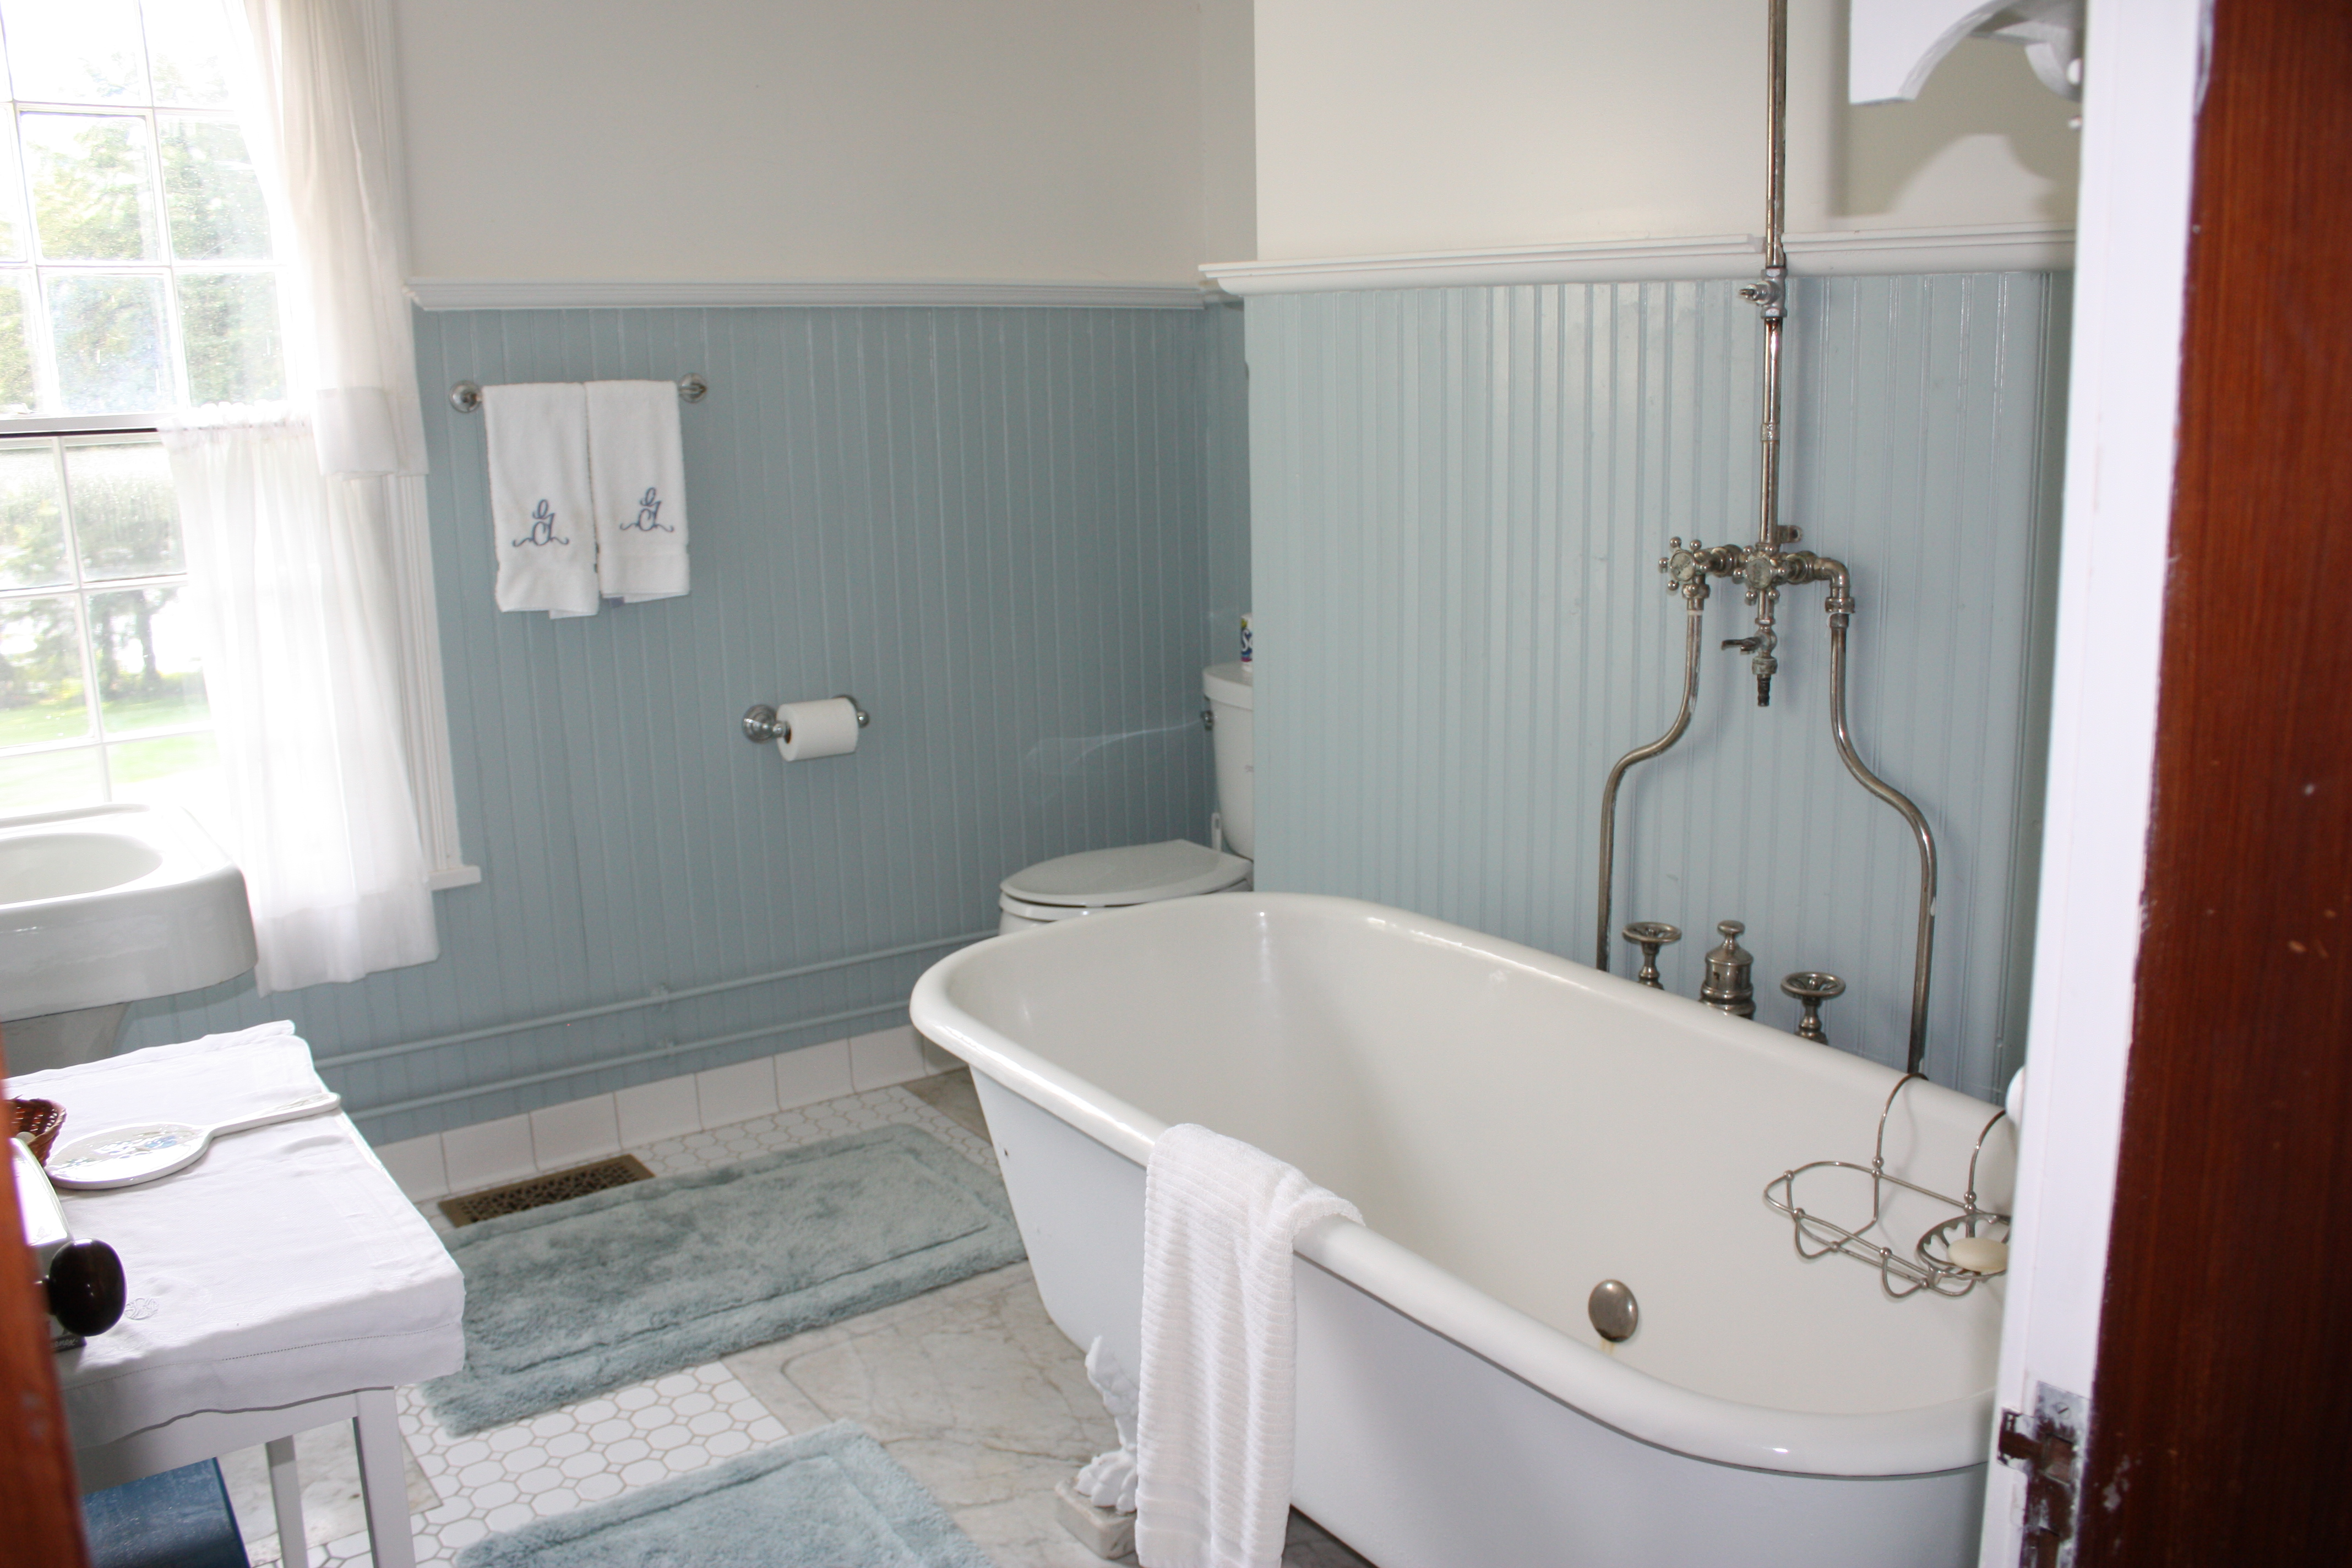 Excellent 36 Nice Ideas And Pictures Of Vintage Bathroom Tile Design Ideas Largest Home Design Picture Inspirations Pitcheantrous